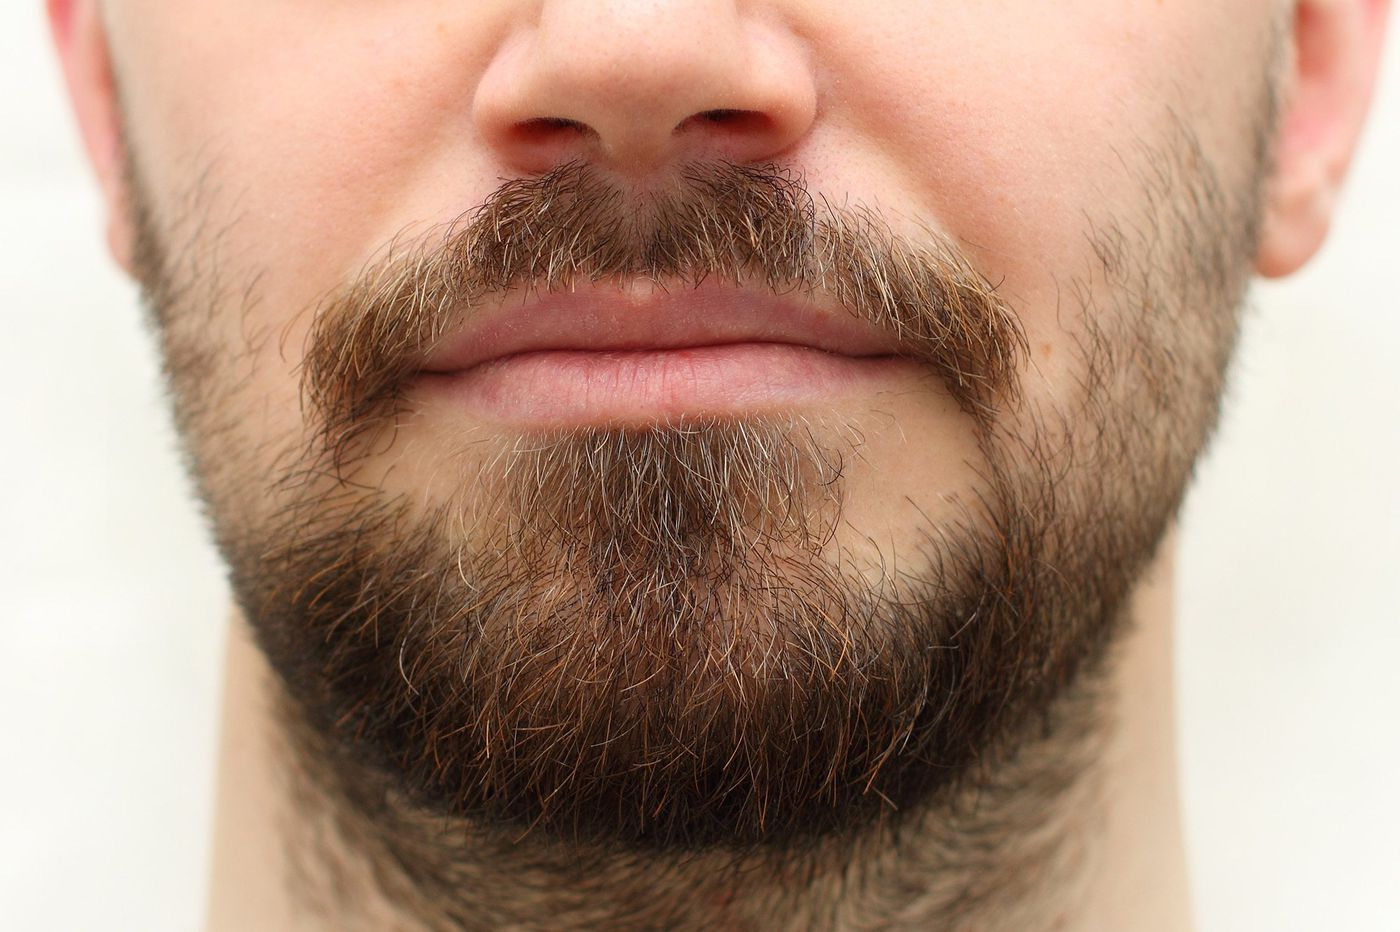 Should I shave my beard to keep from getting the coronavirus?